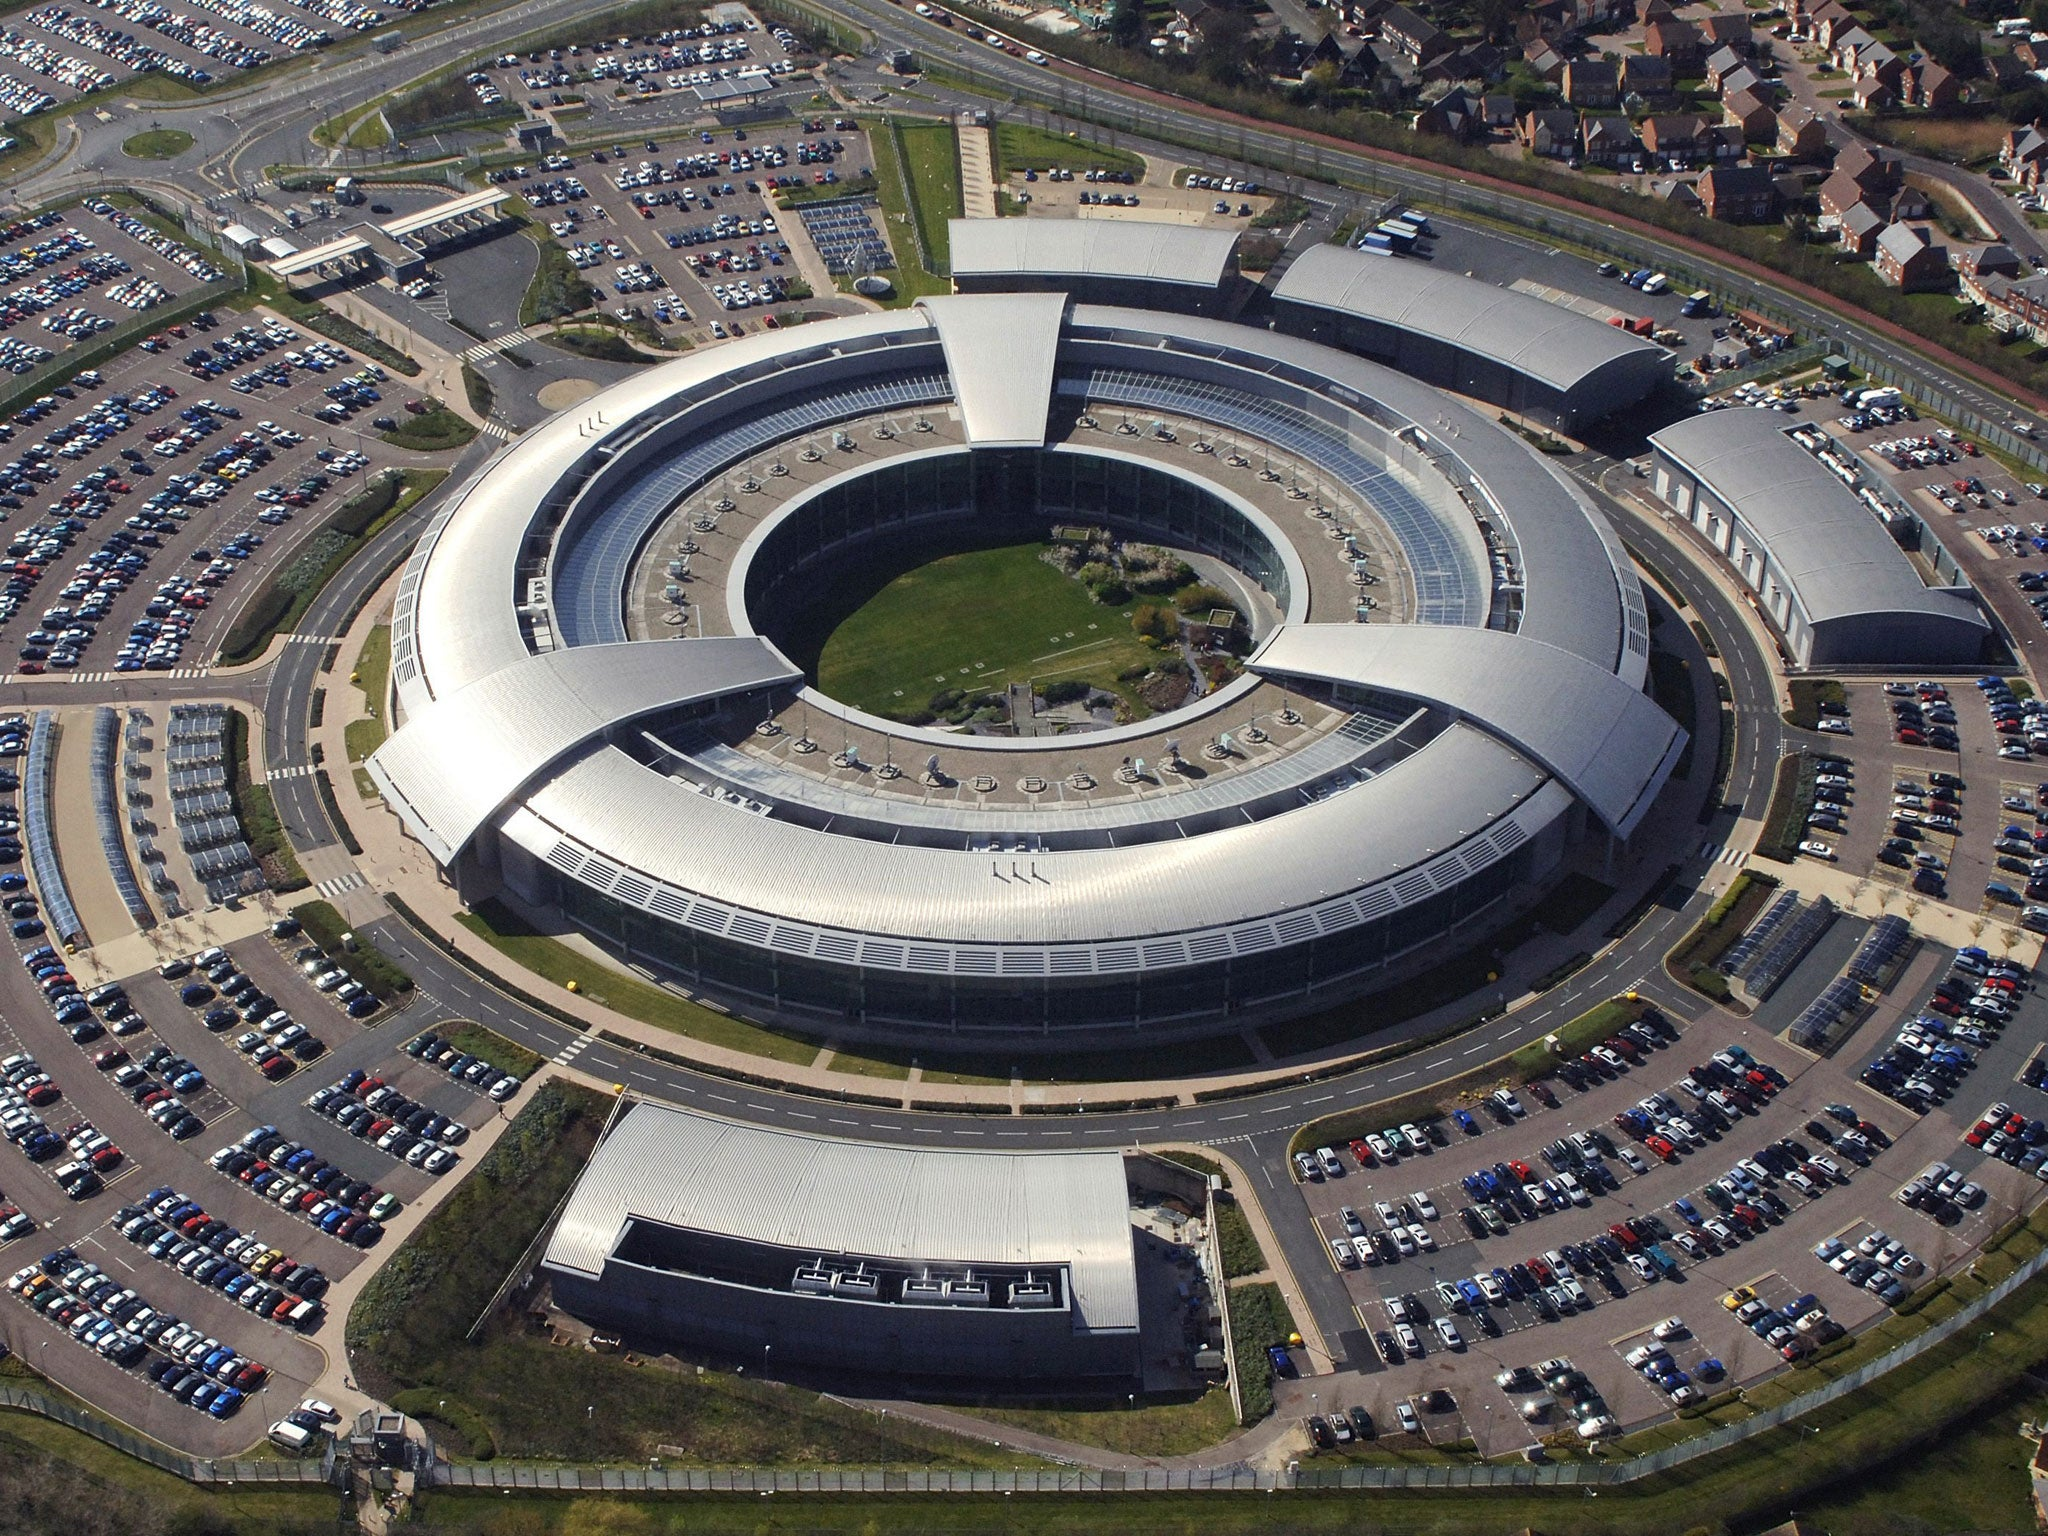 GCHQ spying programme: Spy watchdog 'is understaffed and totally ineffective'